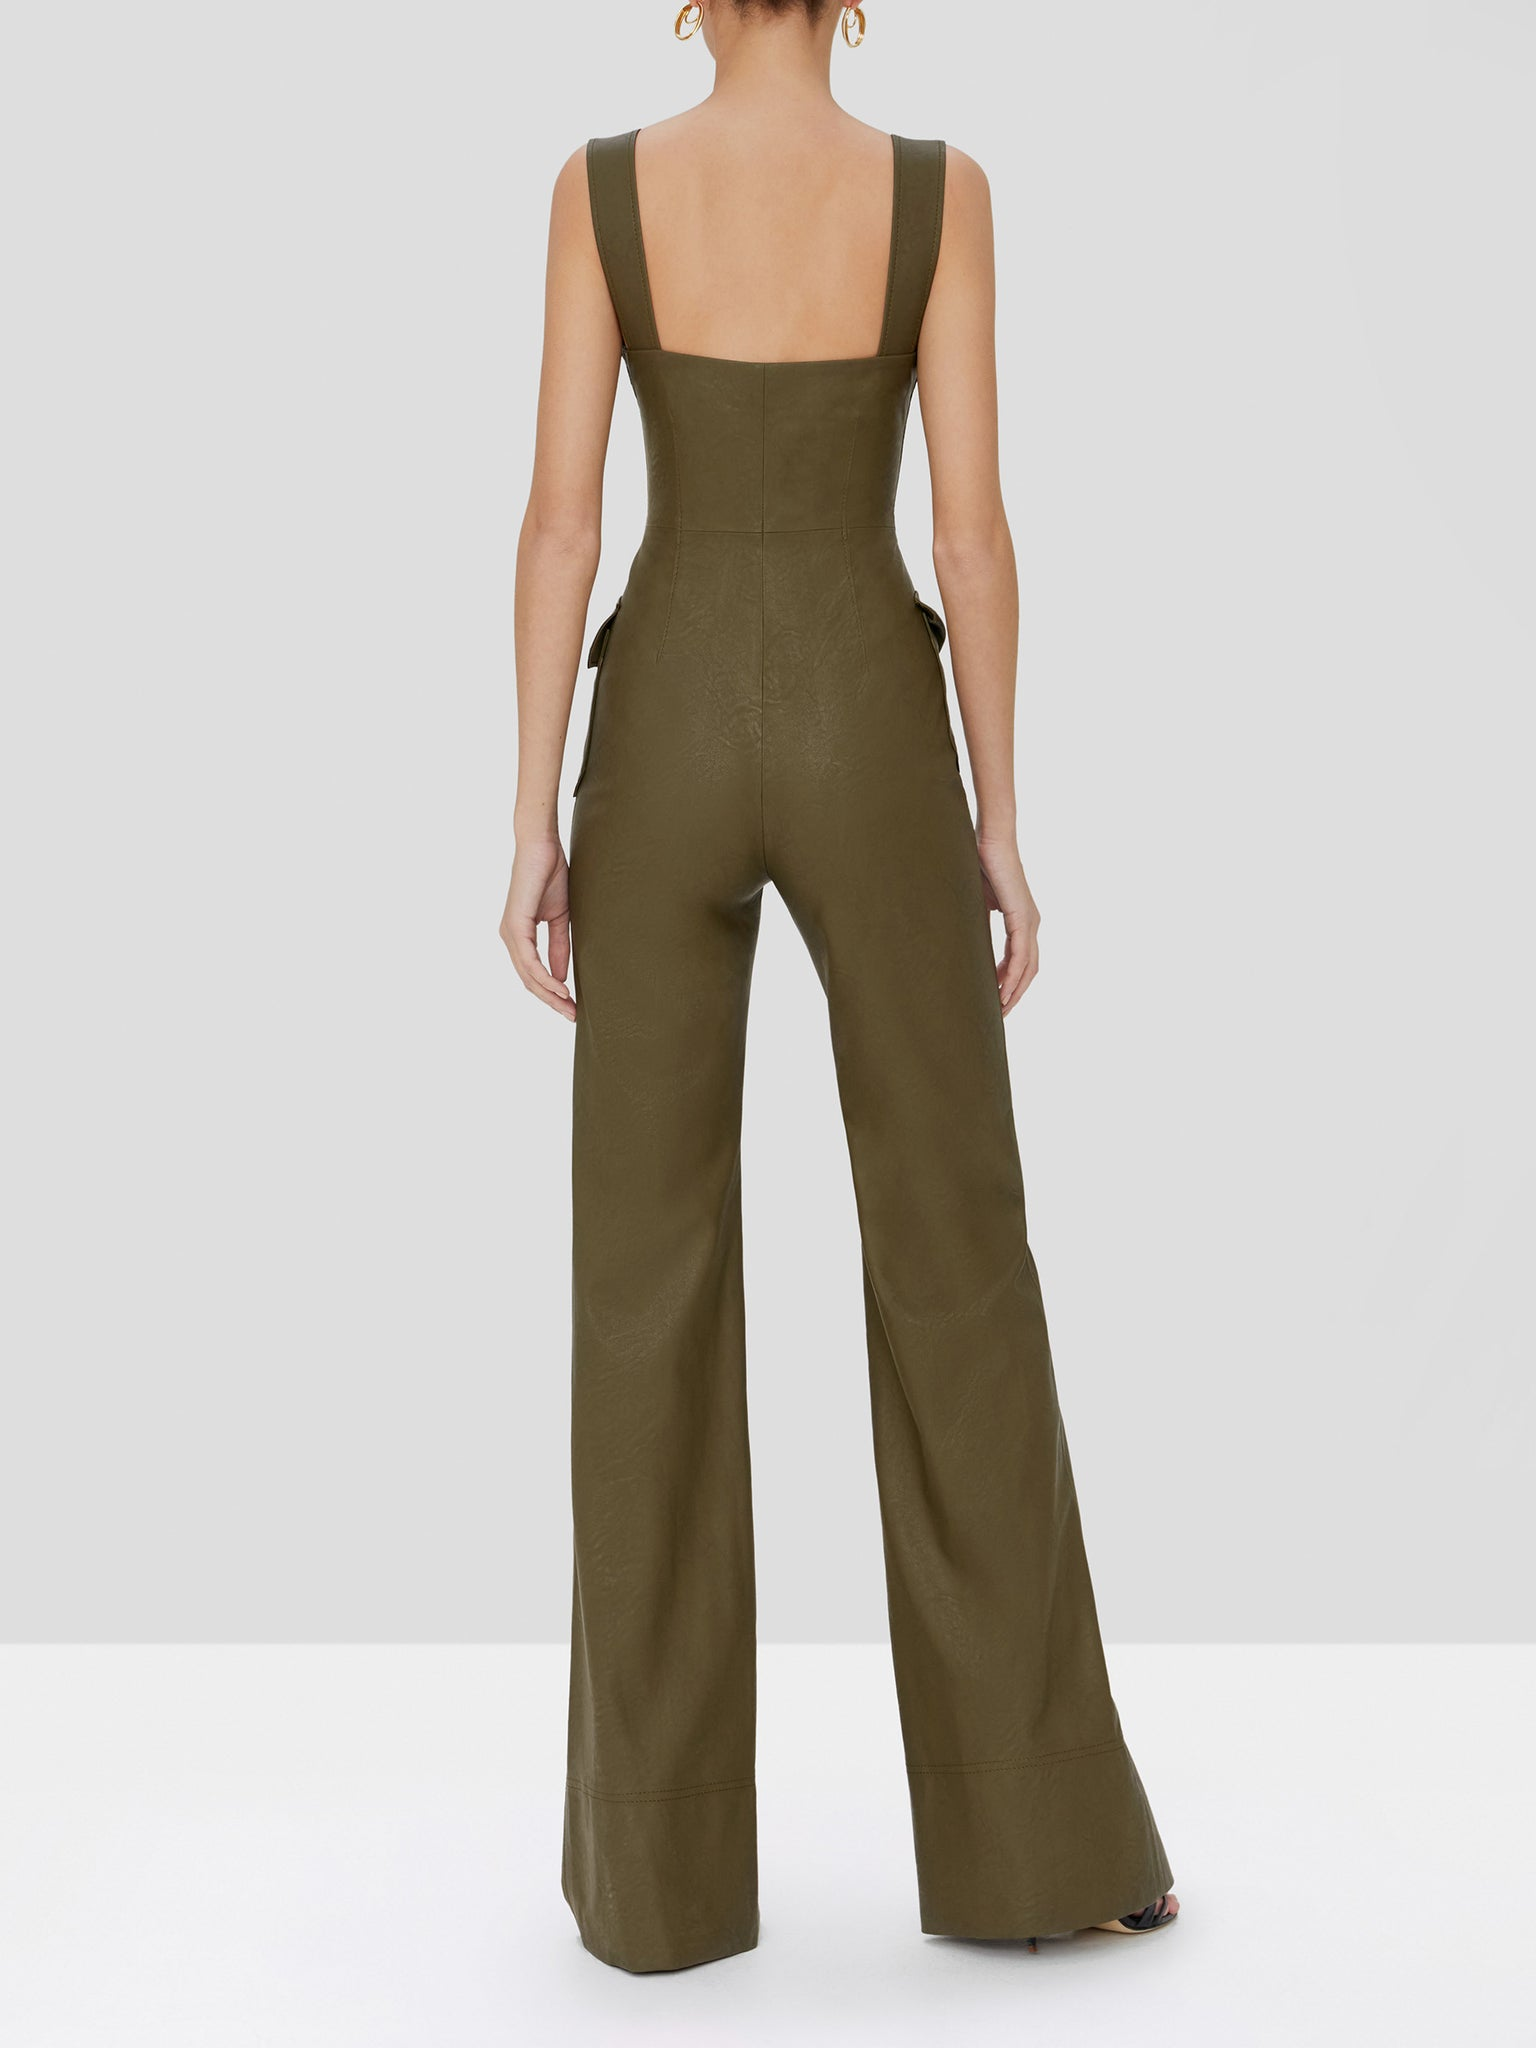 reverie vegan leather jumpsuit in olive - Rear View